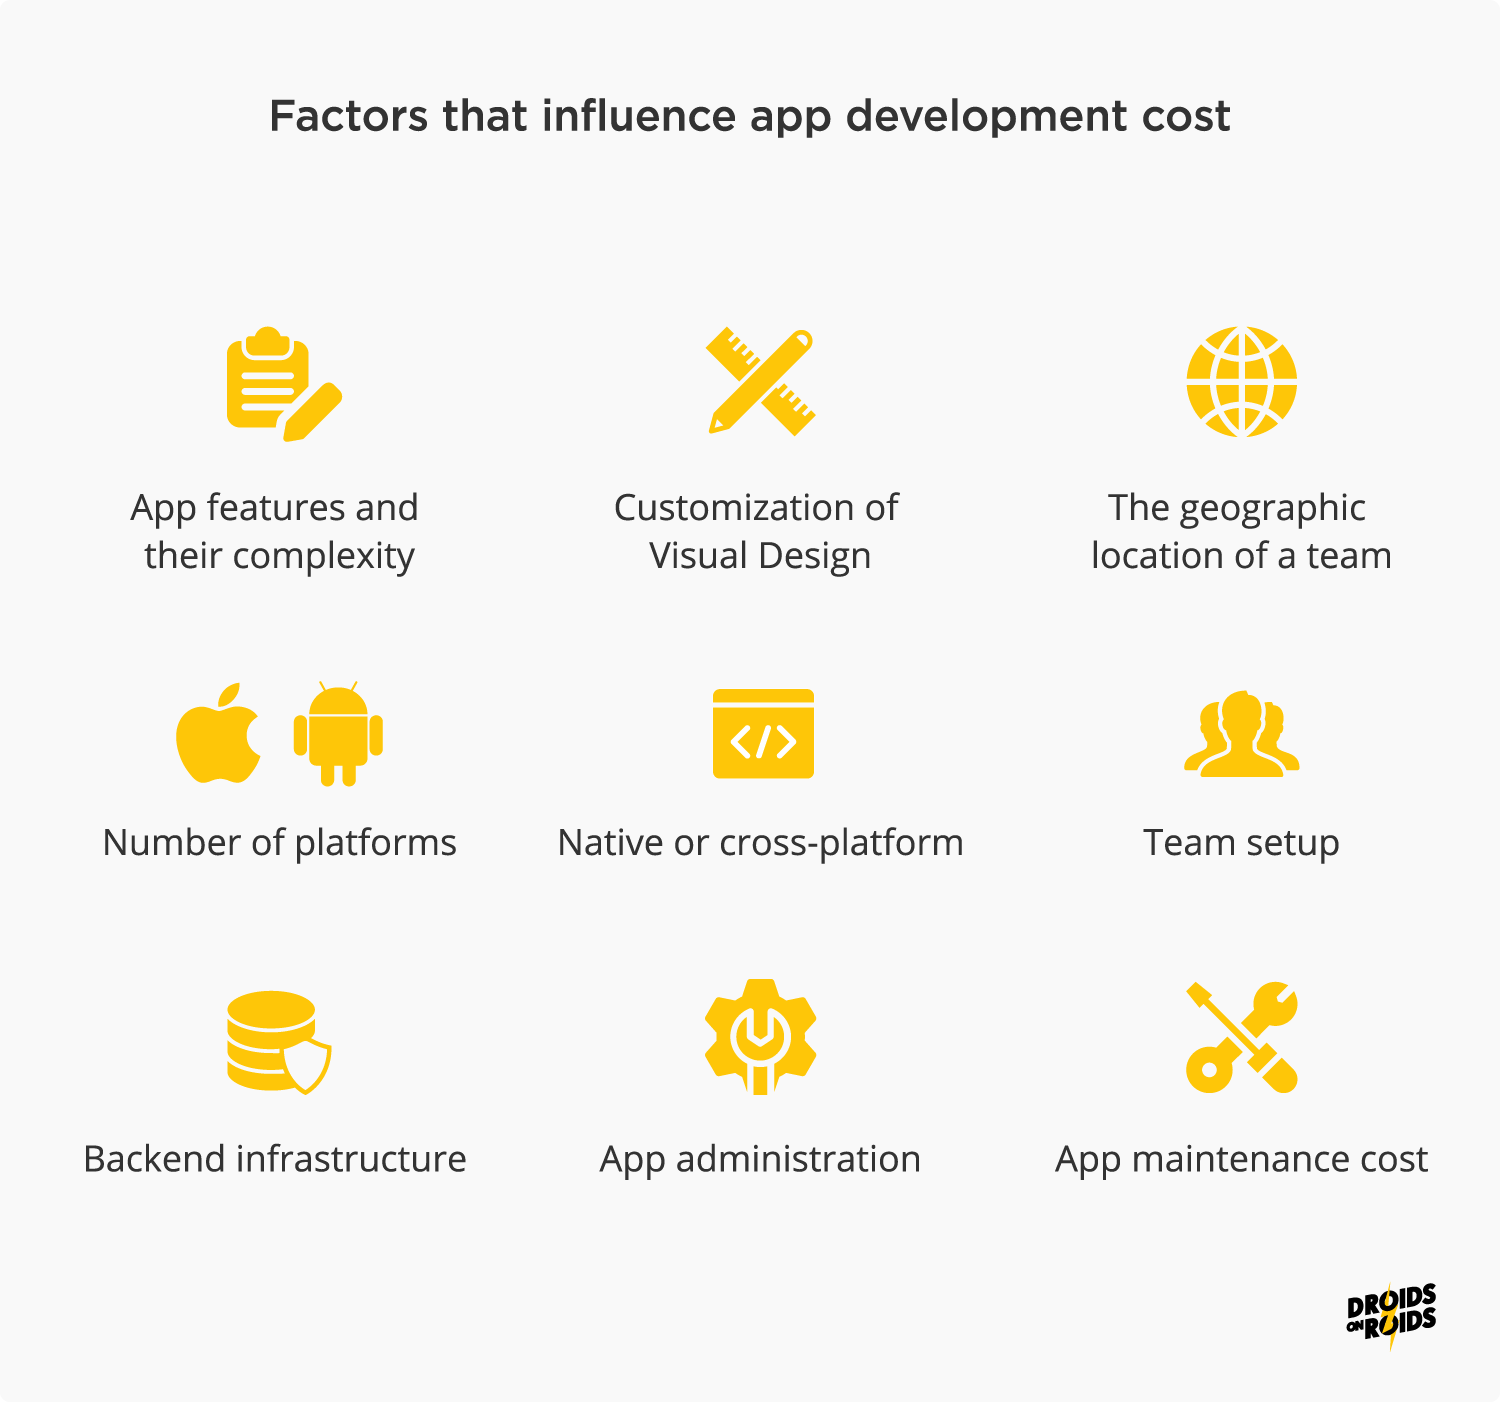 What factors affect the cost of mobile app development?